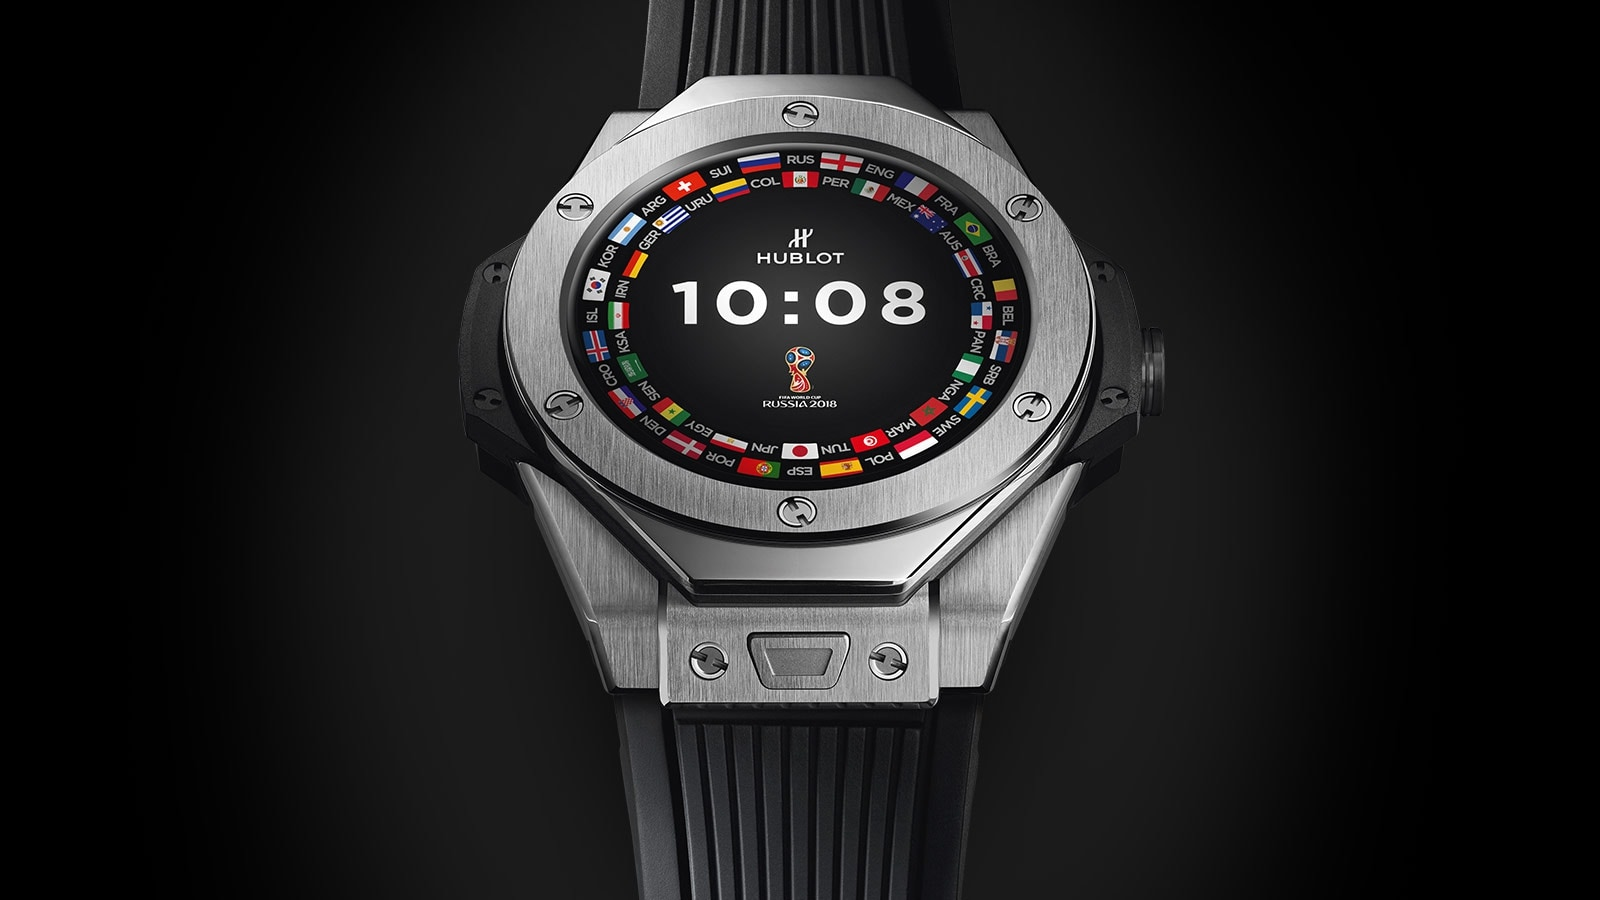 hublot-big-bang-referee-fifa-mondiali-2018-9